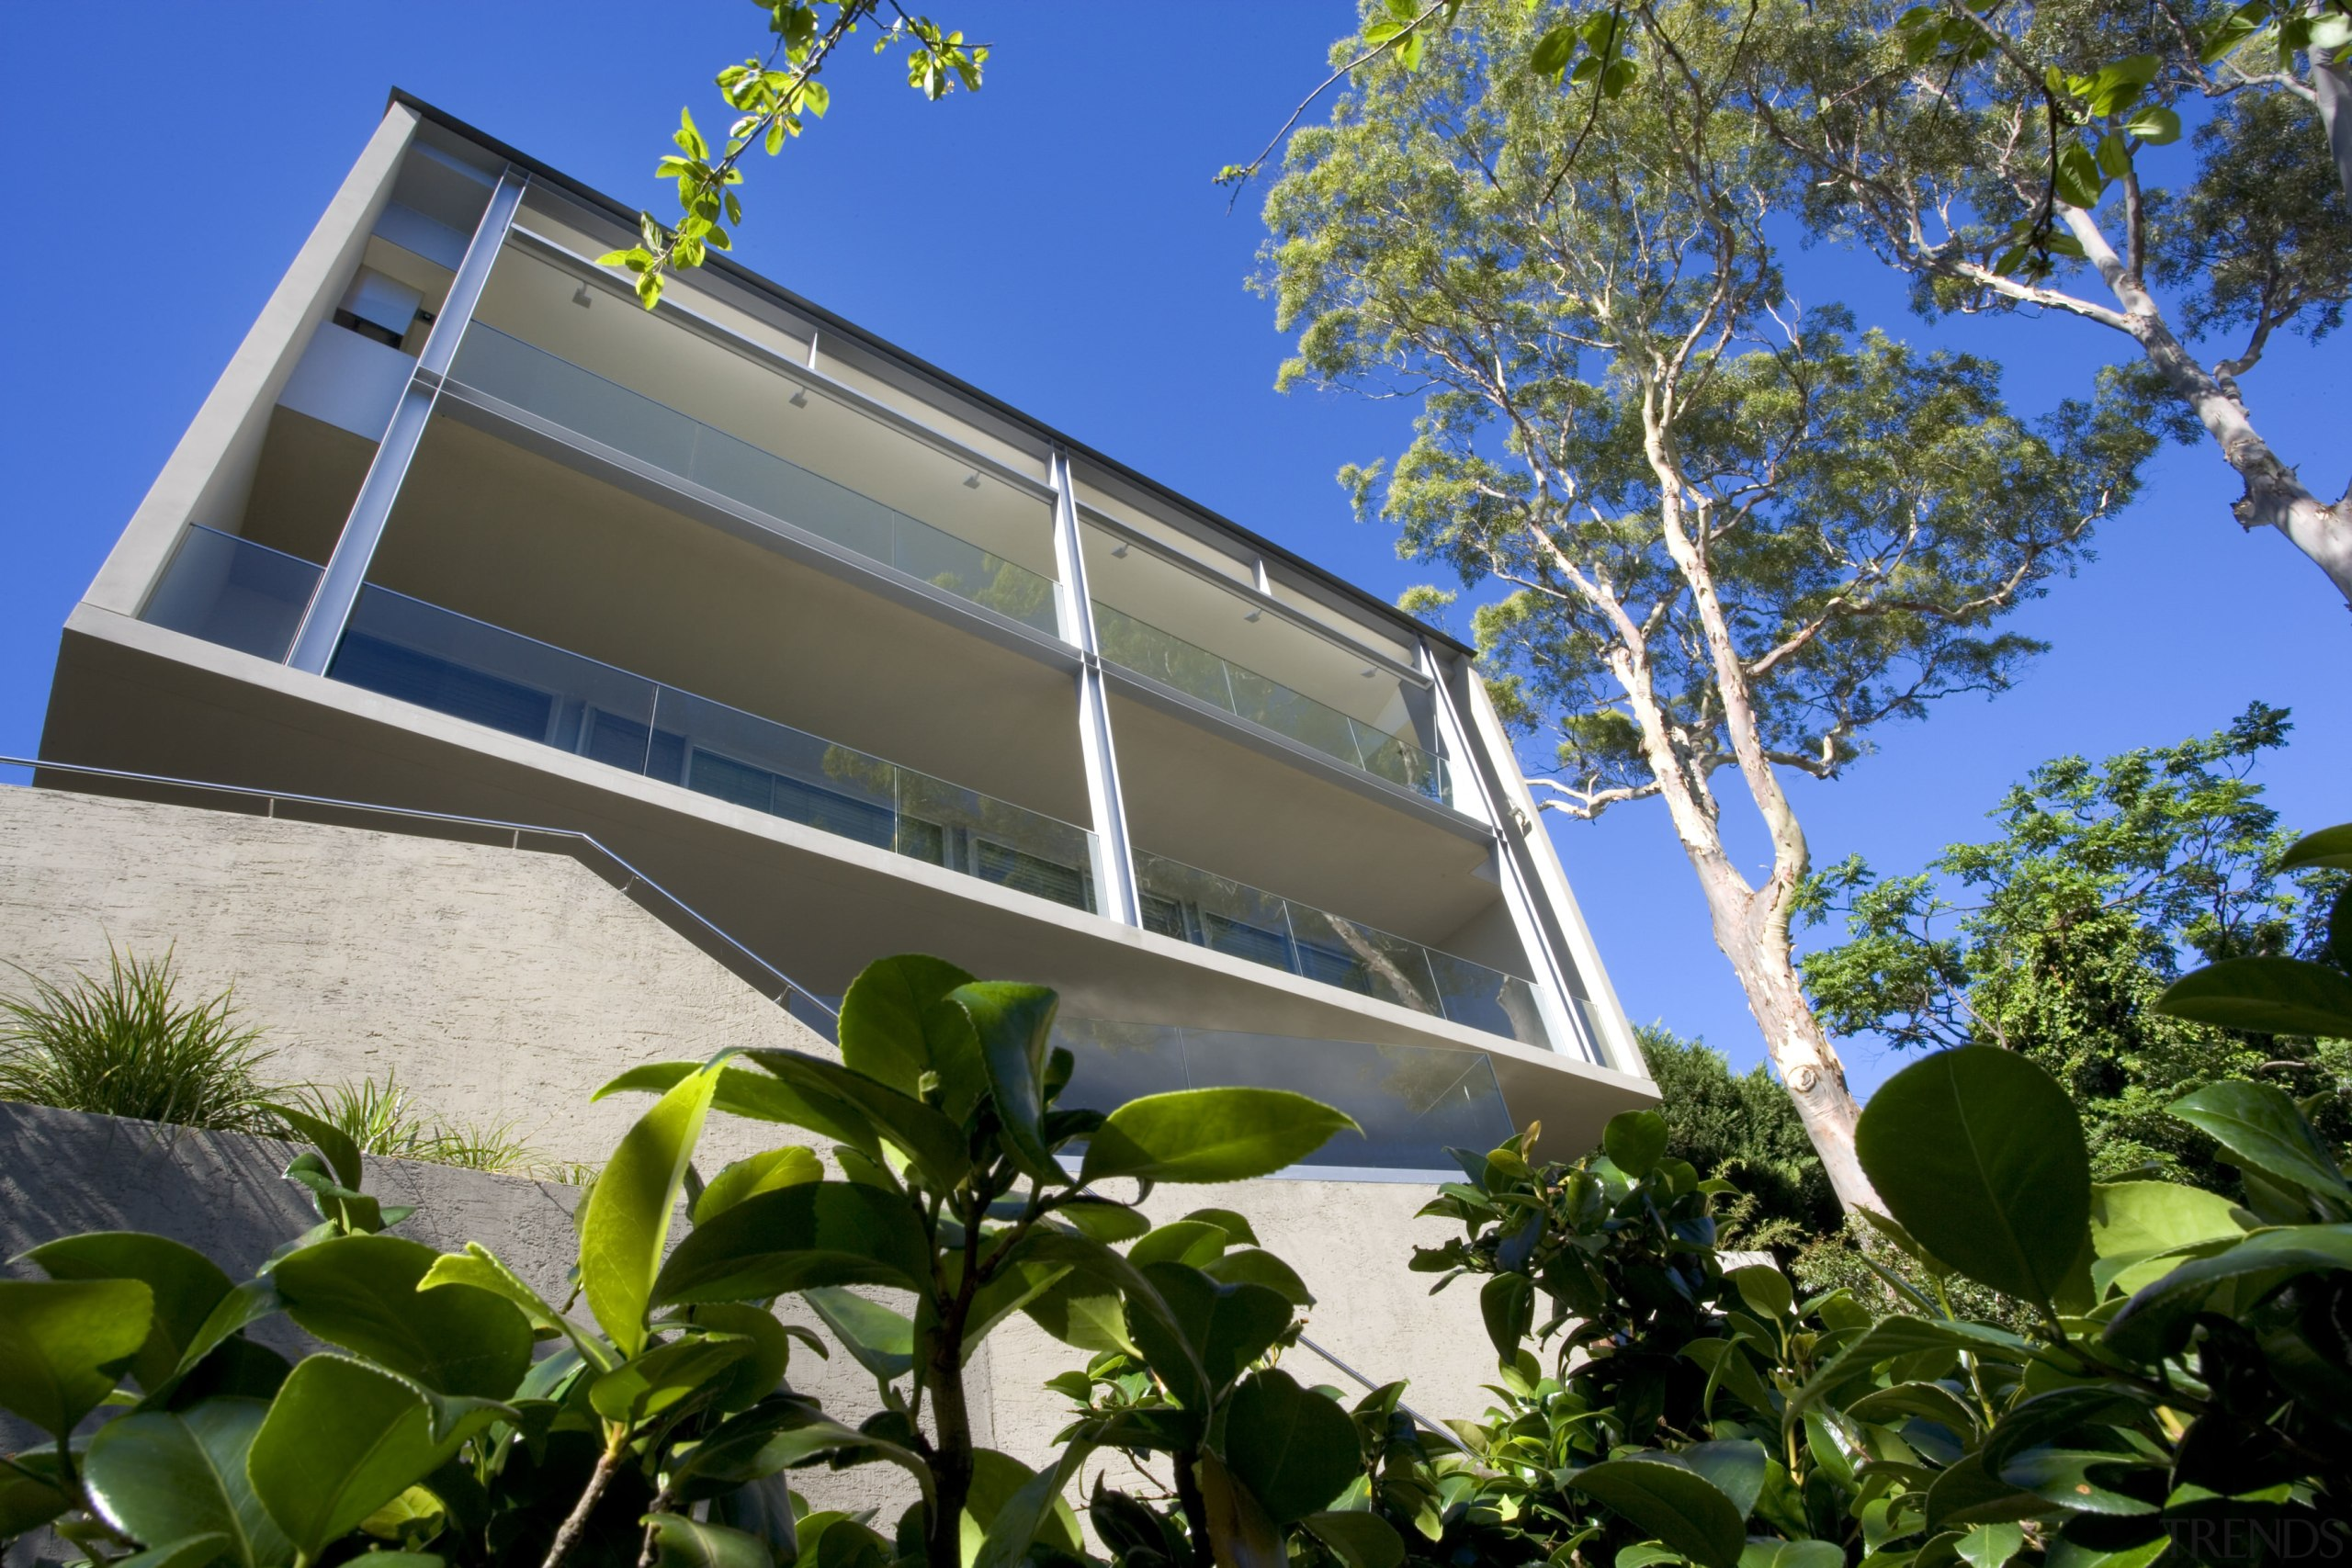 This home is built down a steep cliff, architecture, building, facade, home, house, plant, property, real estate, residential area, tree, blue